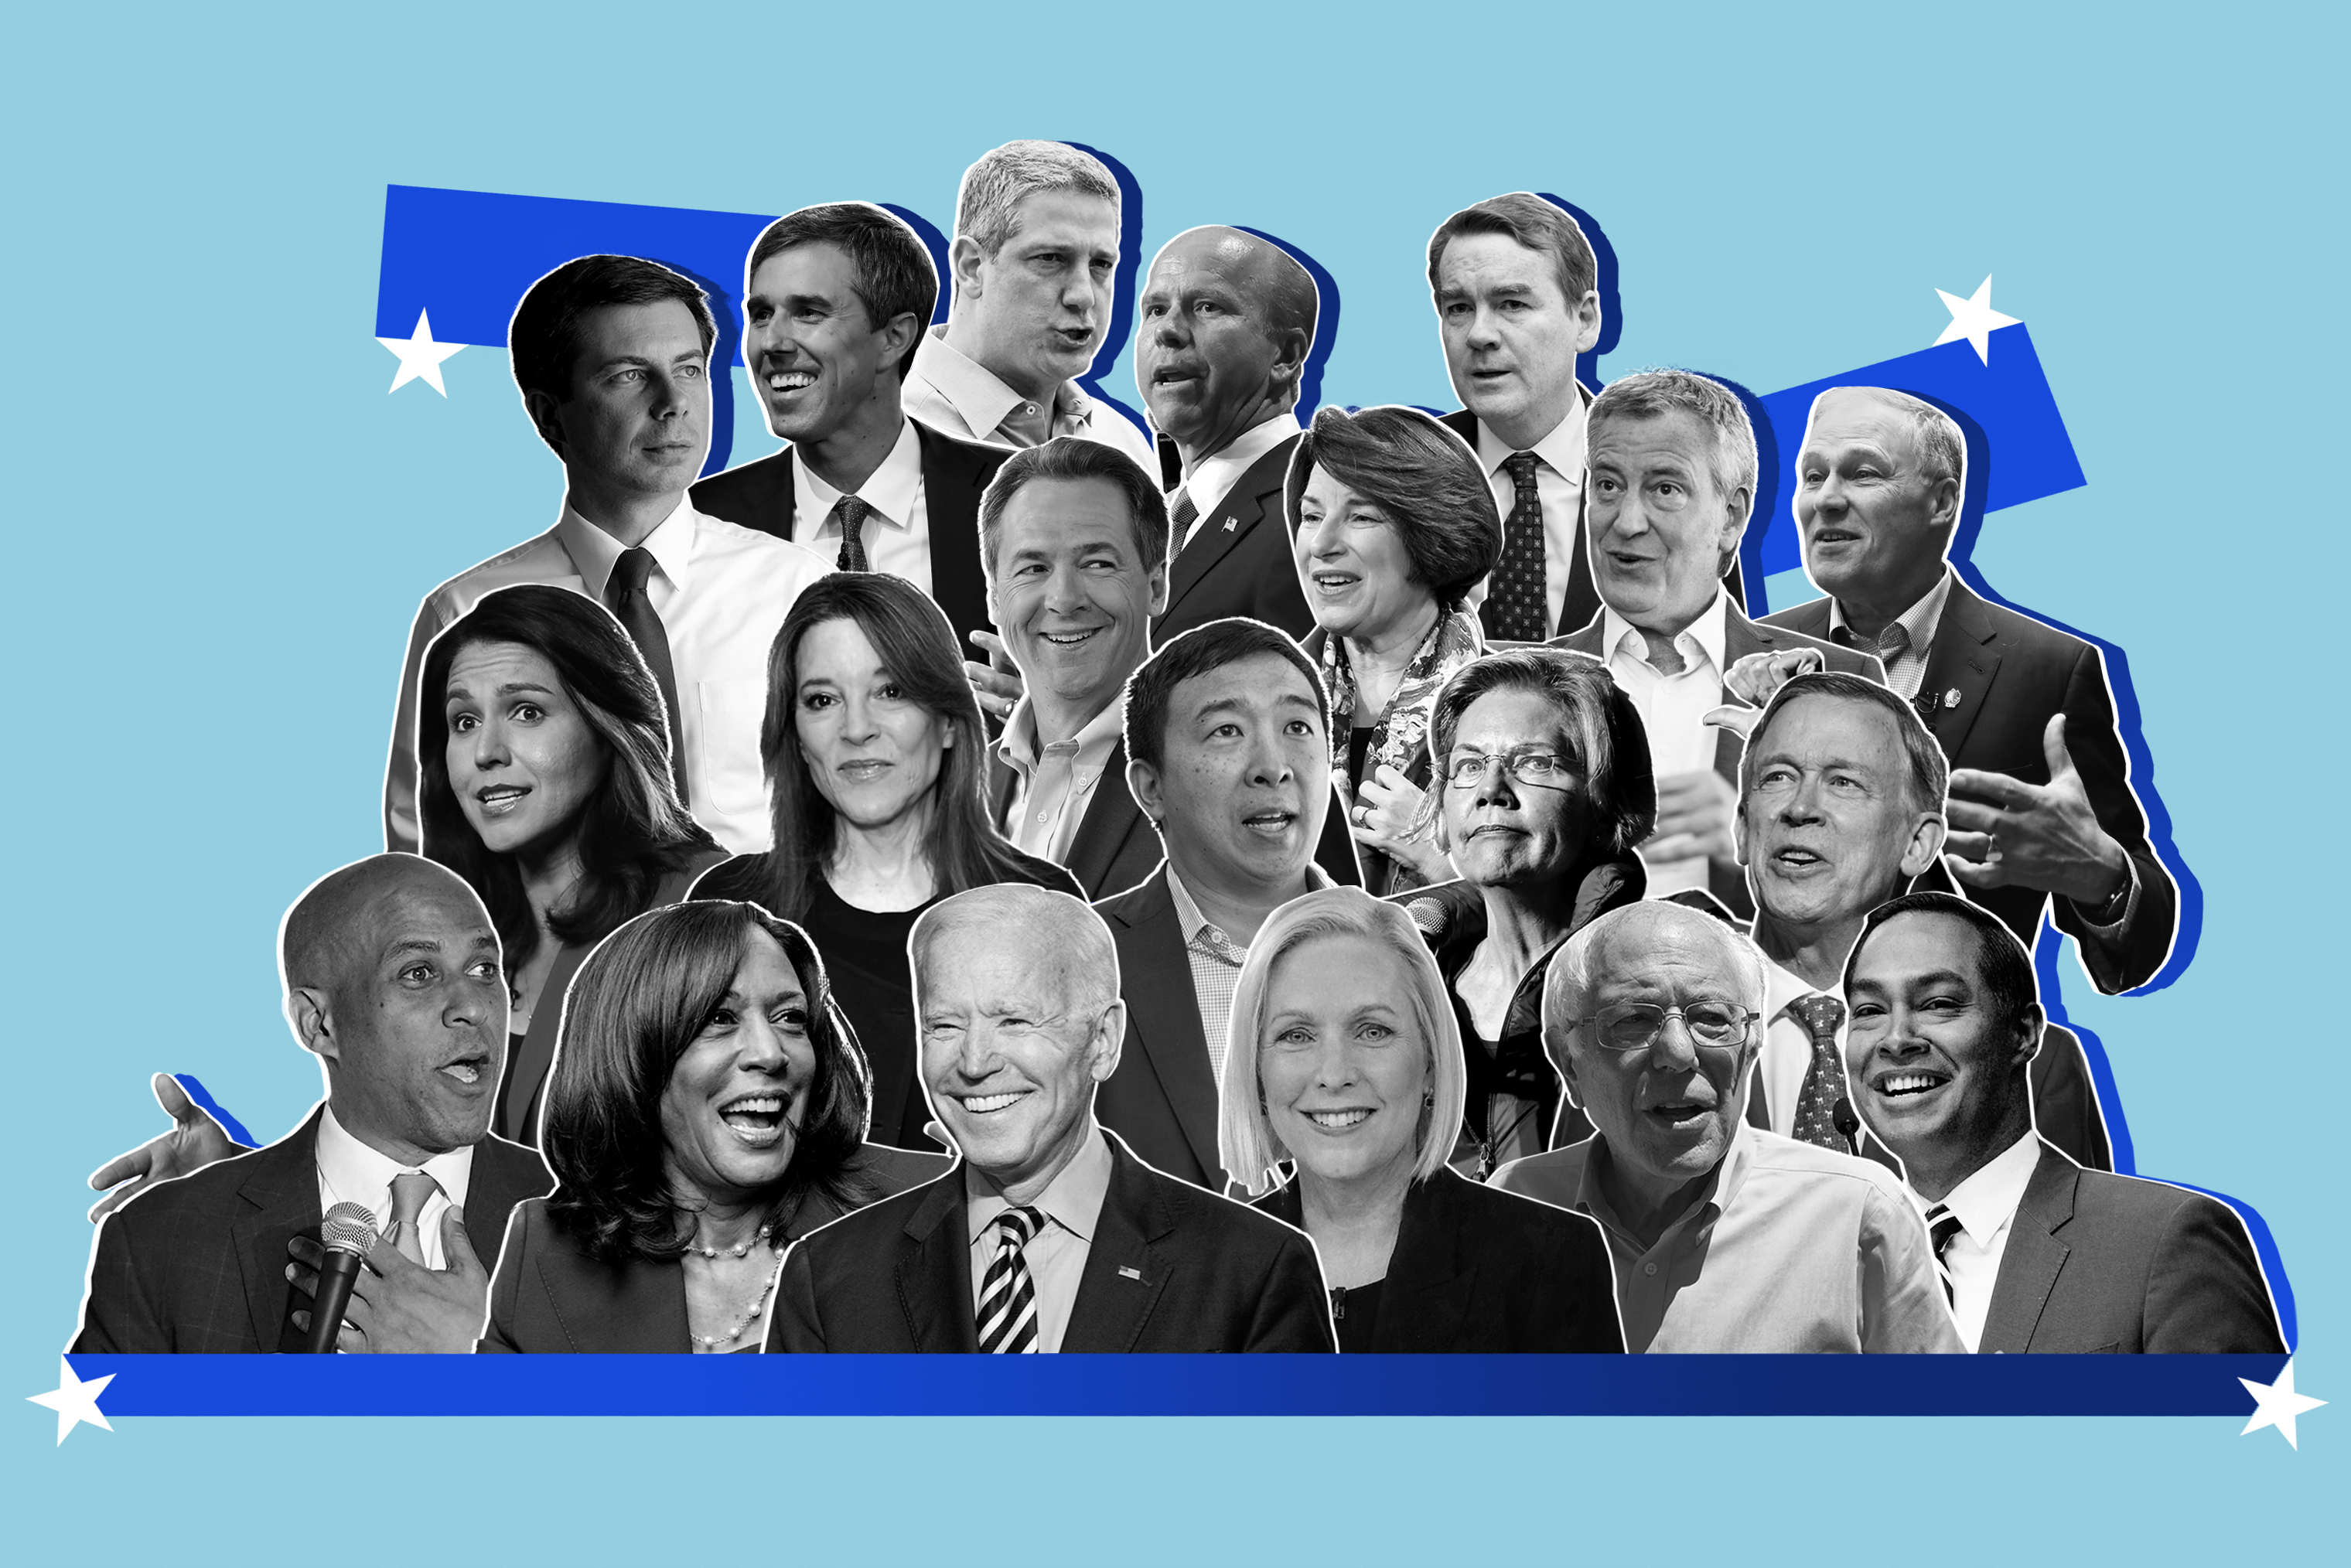 How to Watch Second Democratic Debate Free Online Without